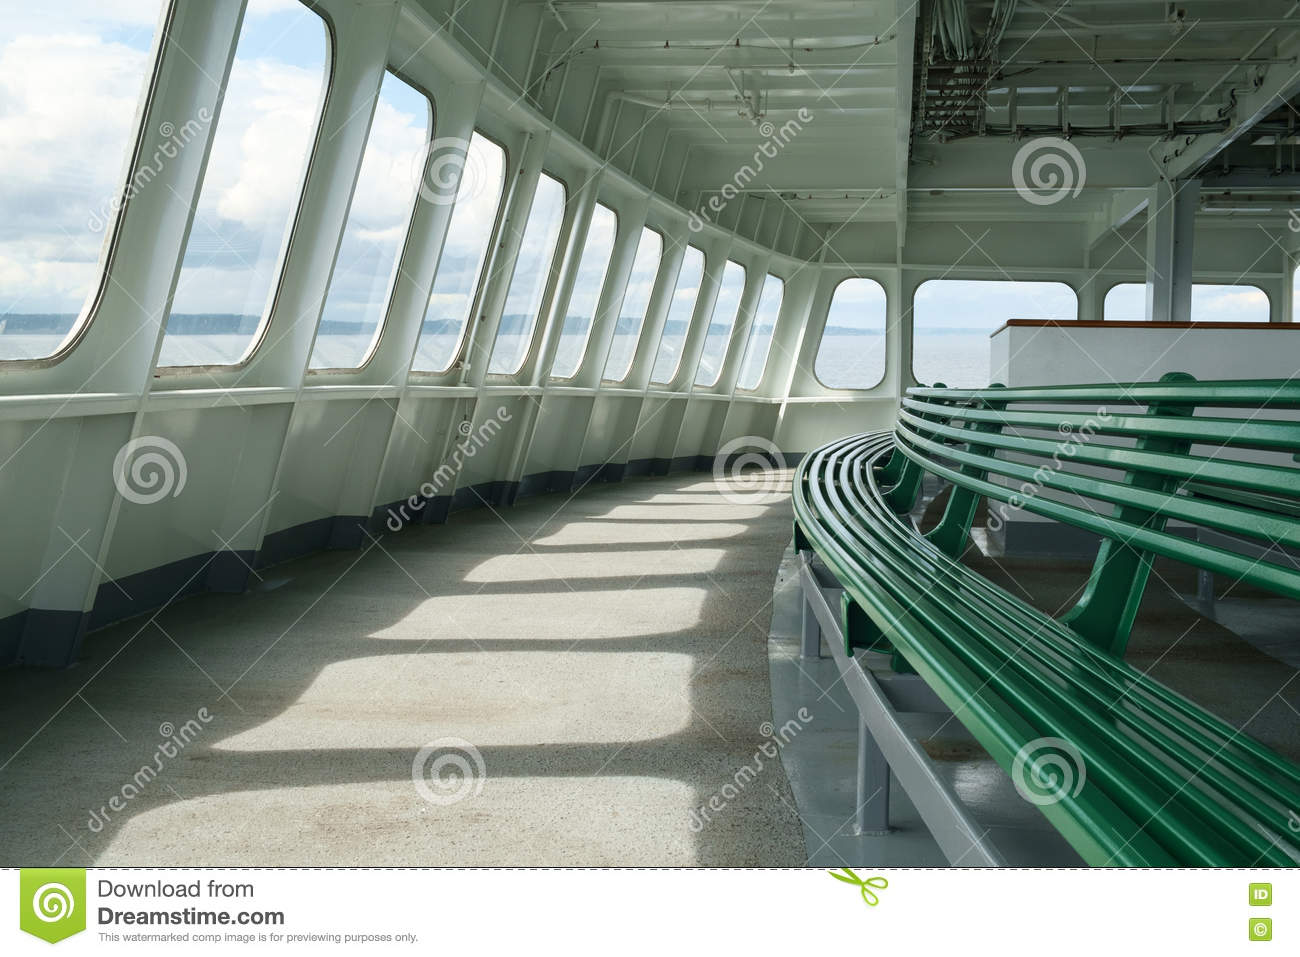 Miraculous Indoor Seating Bench At Front Of Ferry Boat Stock Photo Gmtry Best Dining Table And Chair Ideas Images Gmtryco